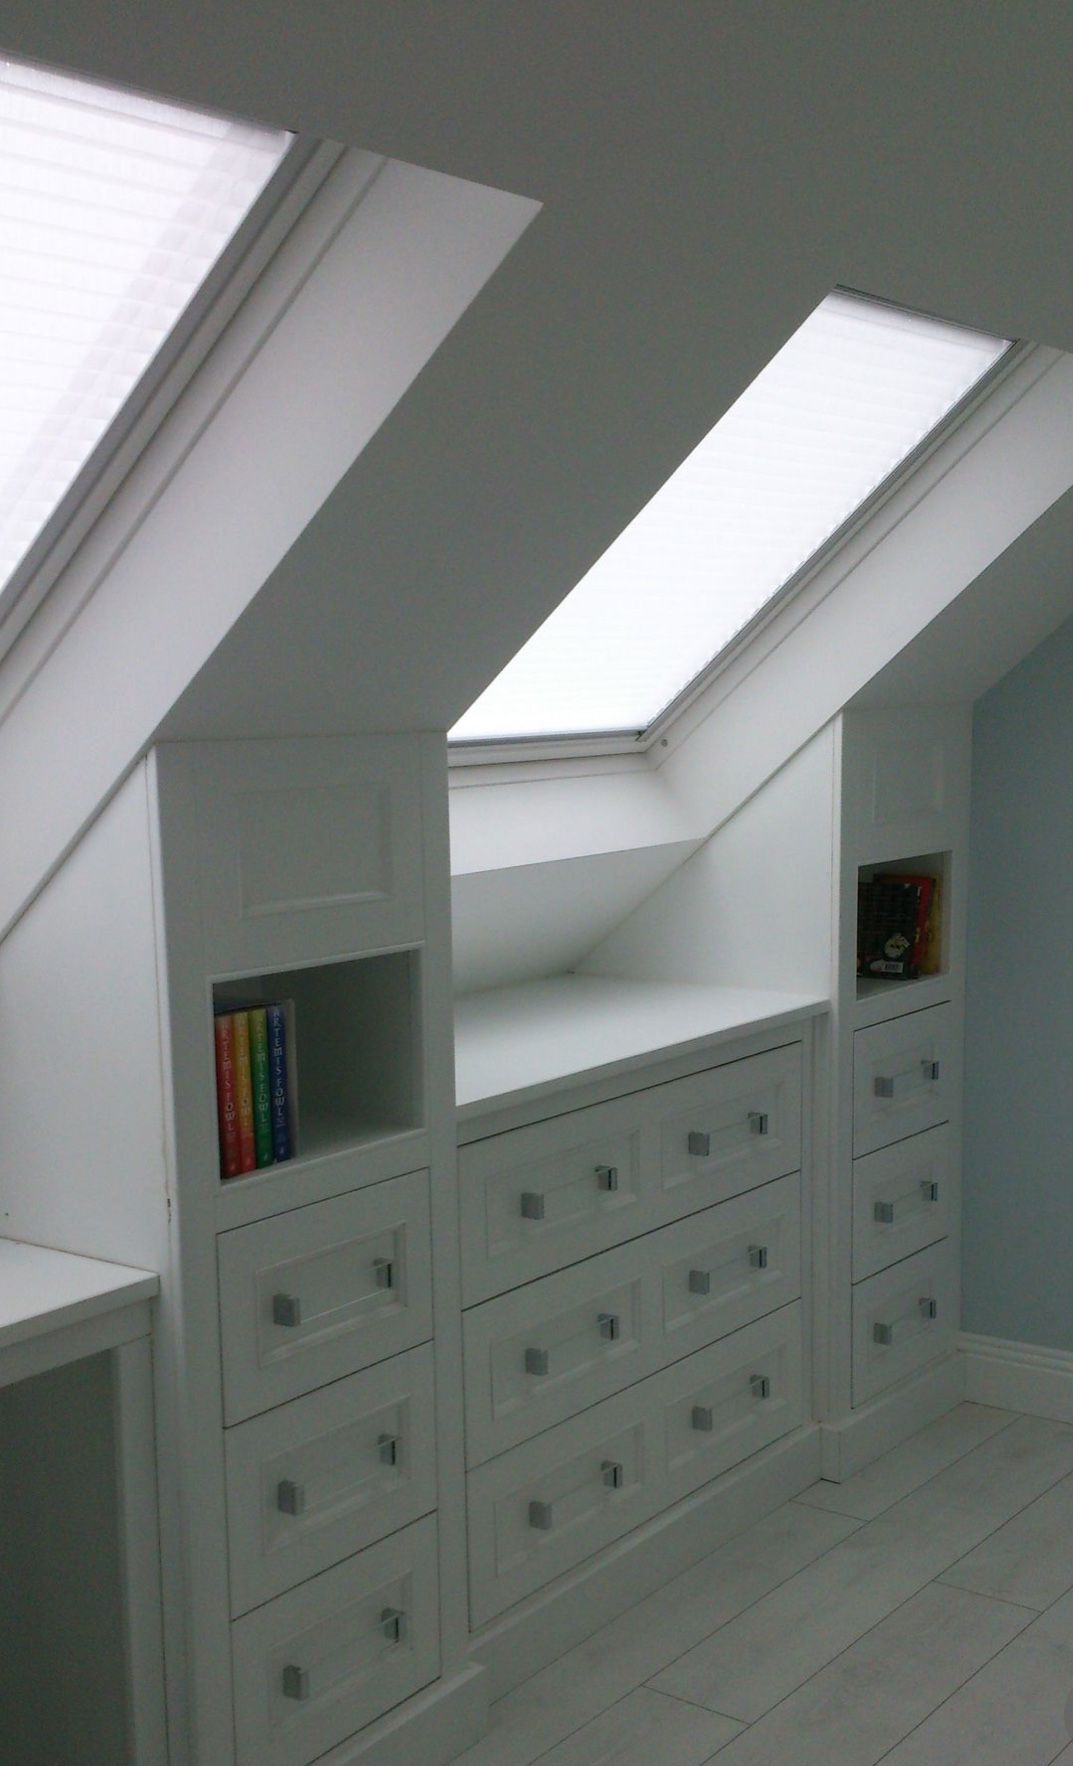 low ceiling attic bedroom ideas on attic room ideas slanted walls bedrooms small attic room ideas reading low ceiling for teens diy kids convers small attic room loft storage loft spaces attic room ideas slanted walls